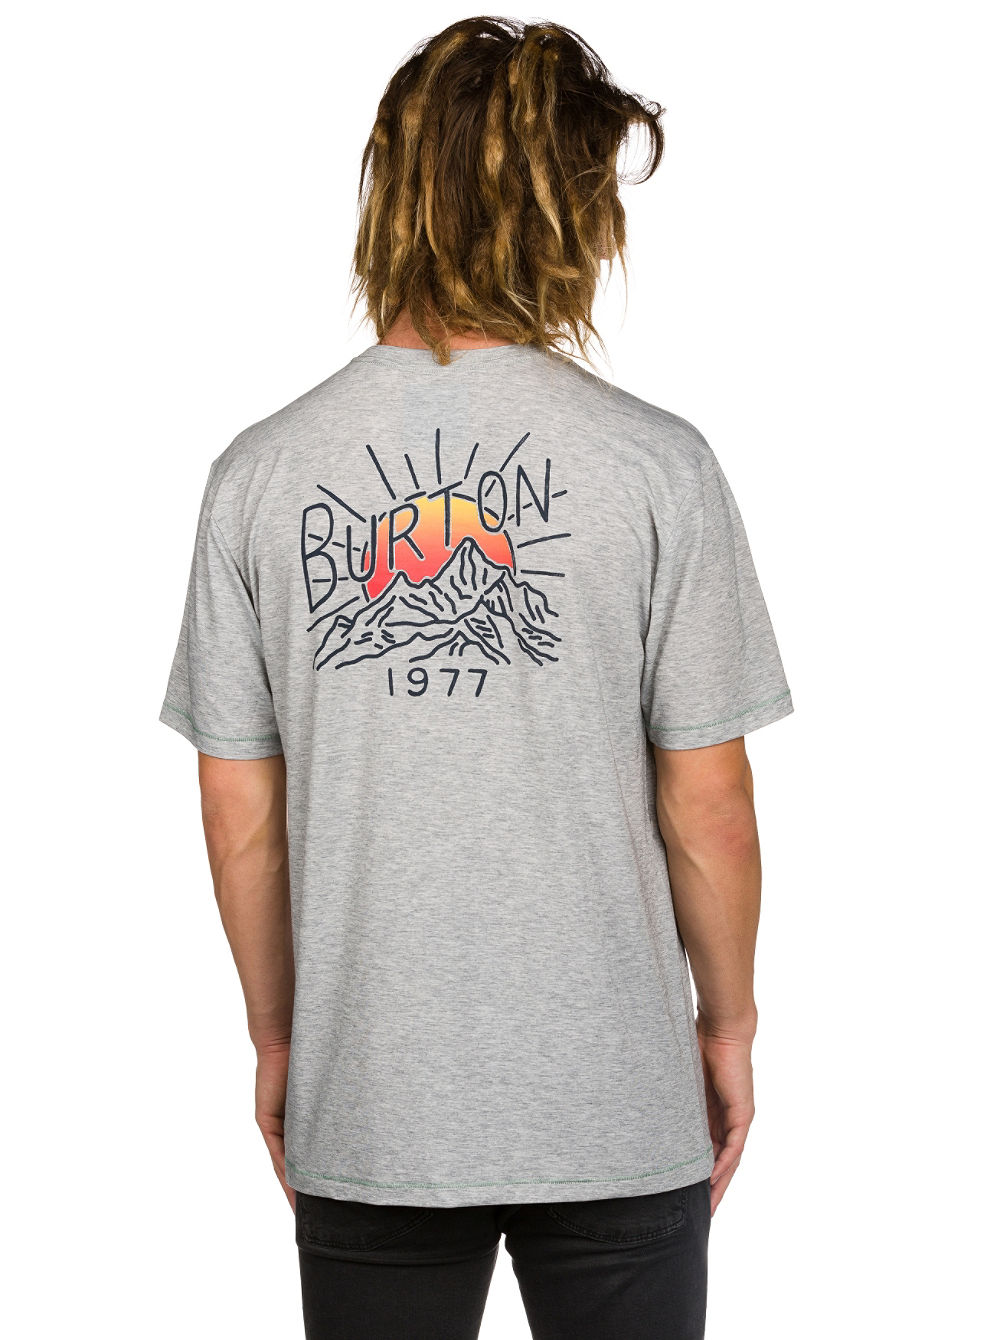 burton-ridge-view-activity-t-shirt